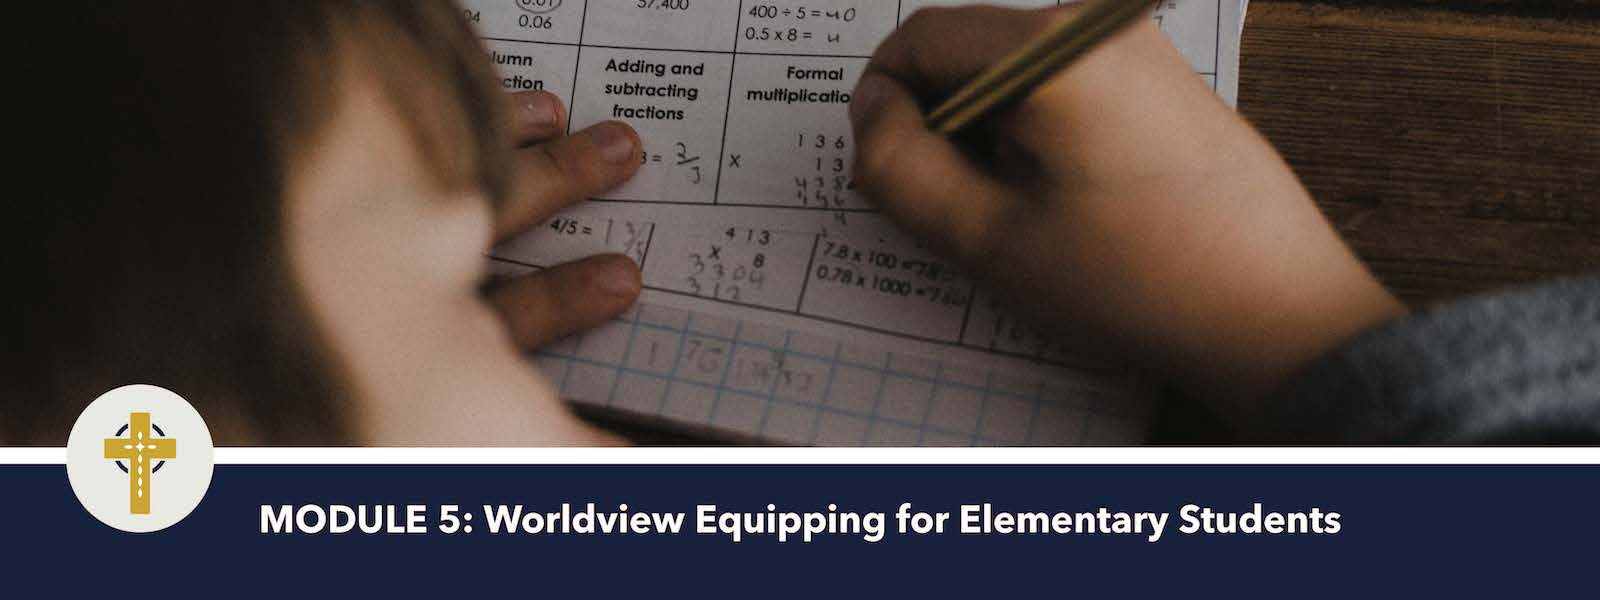 Worldview Equipping for Elementary Students (Module 5)